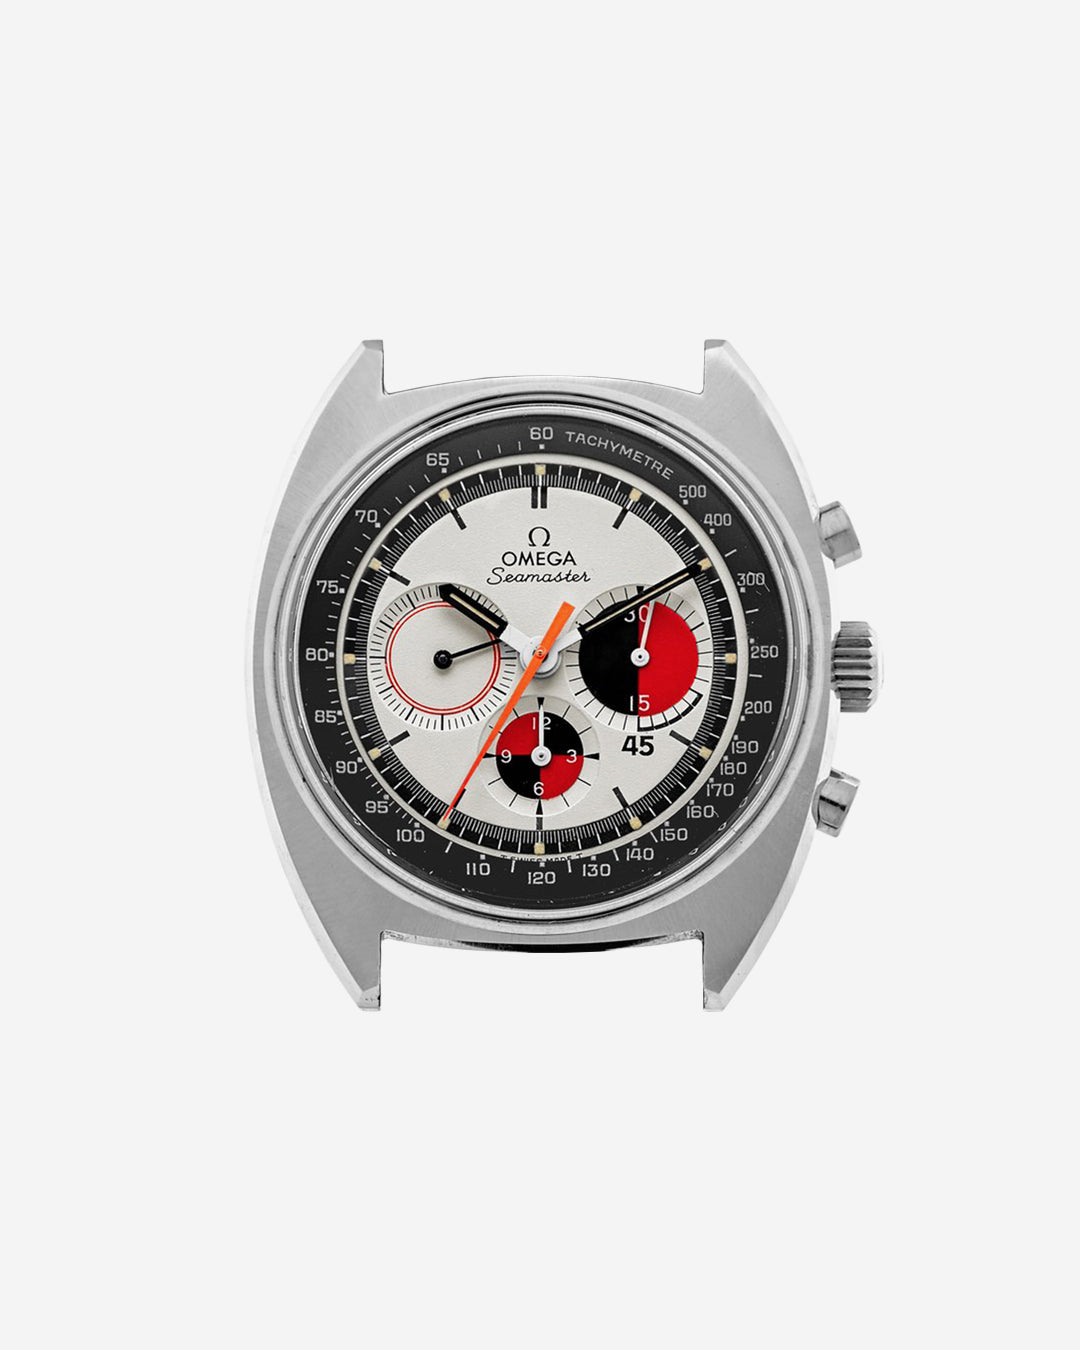 Omega Soccer timer cutout in The Colourful World of Vintage Watches for A Collected Man London